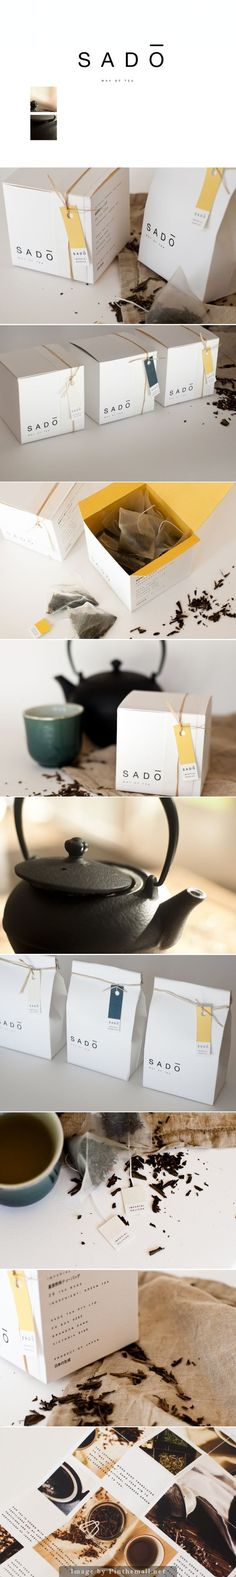 Sado Tea Packaging | Fivestar Branding – Design and Branding Agency & Inspiration Gallery